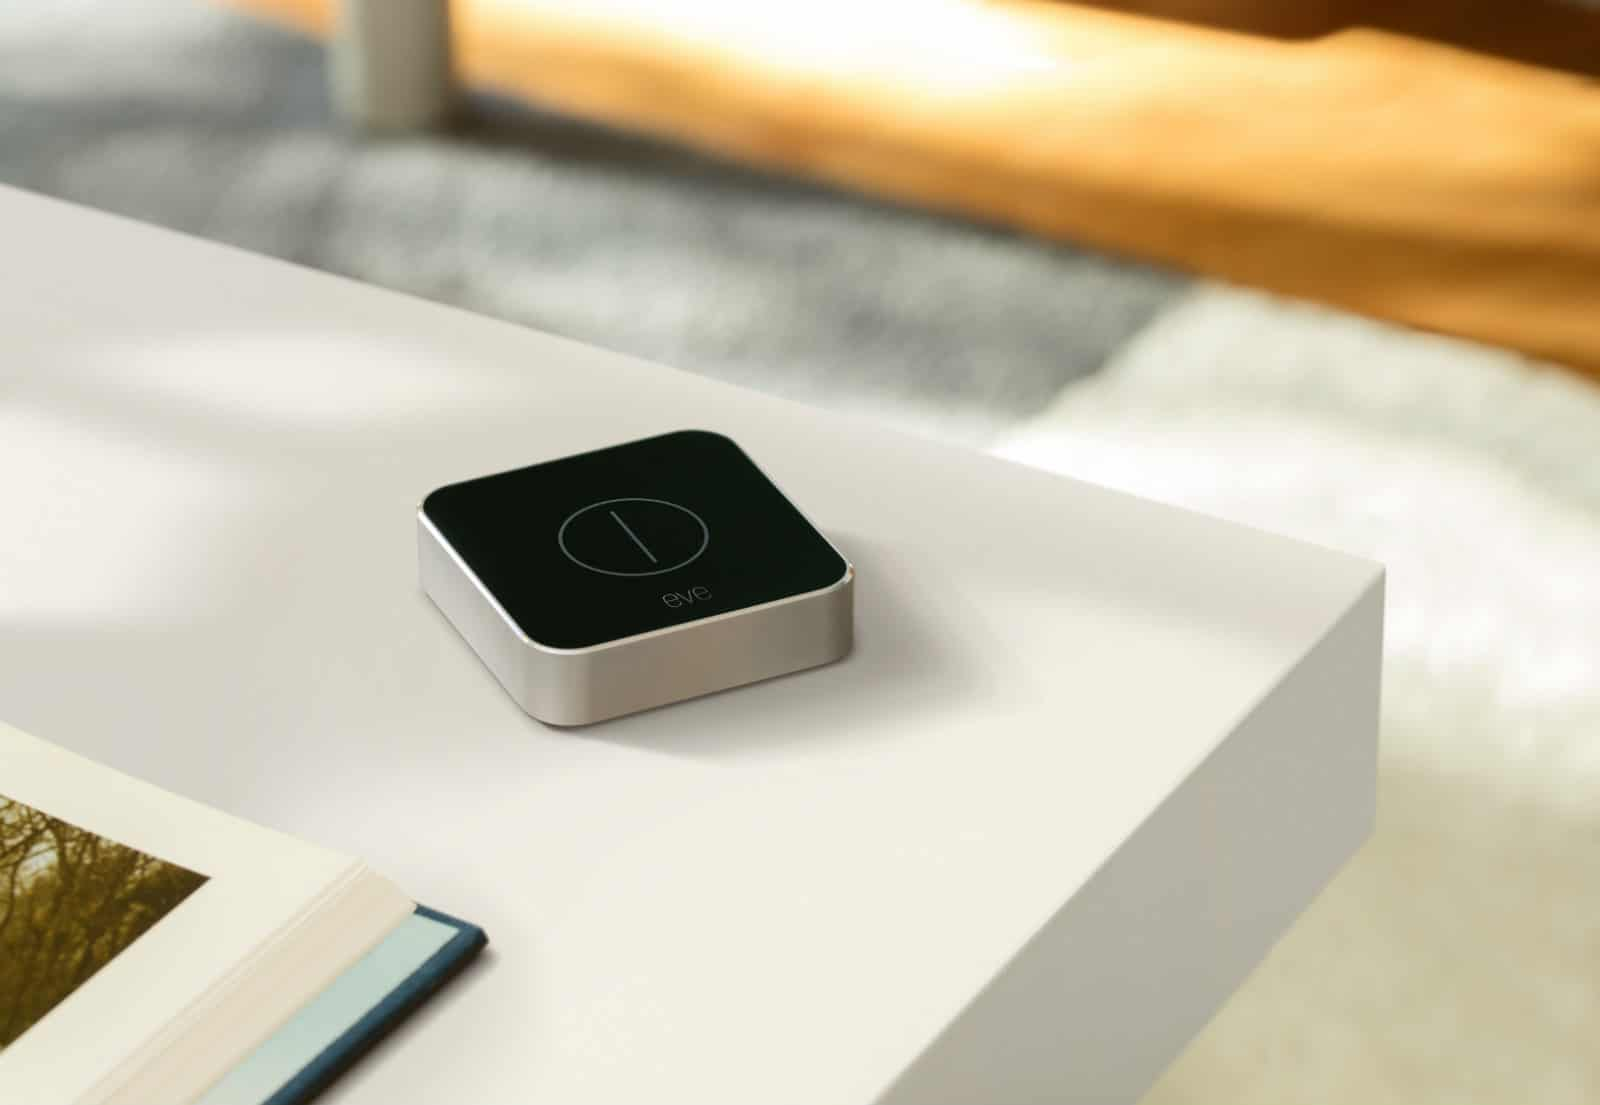 The Elgato Eve Button puts control of your HomeKit devices at your fingertips.